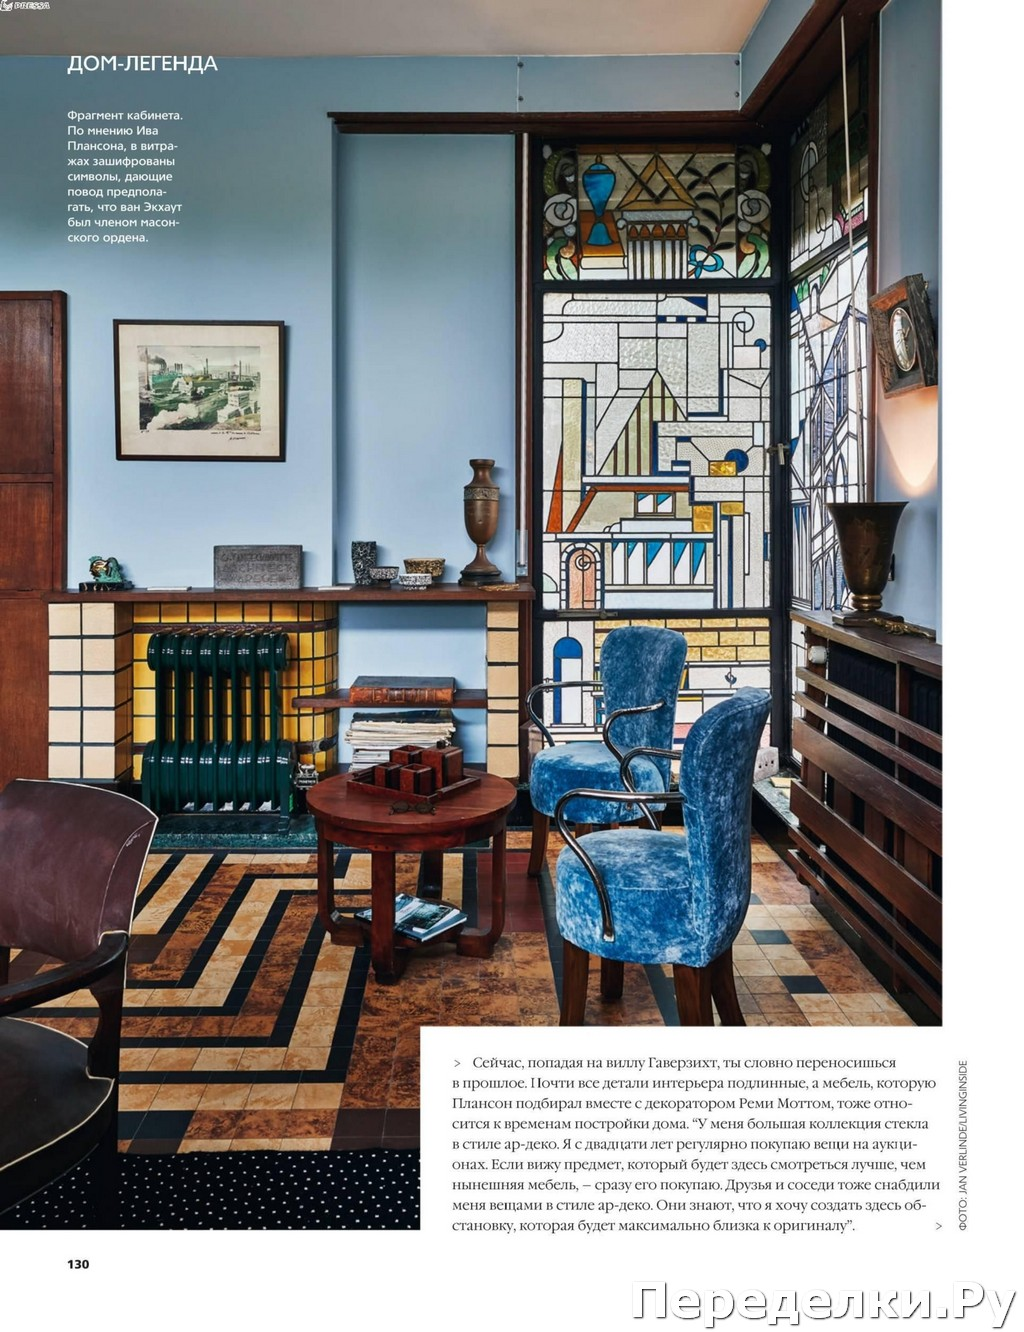 AD Architectural Digest 4 aprel 2020 125